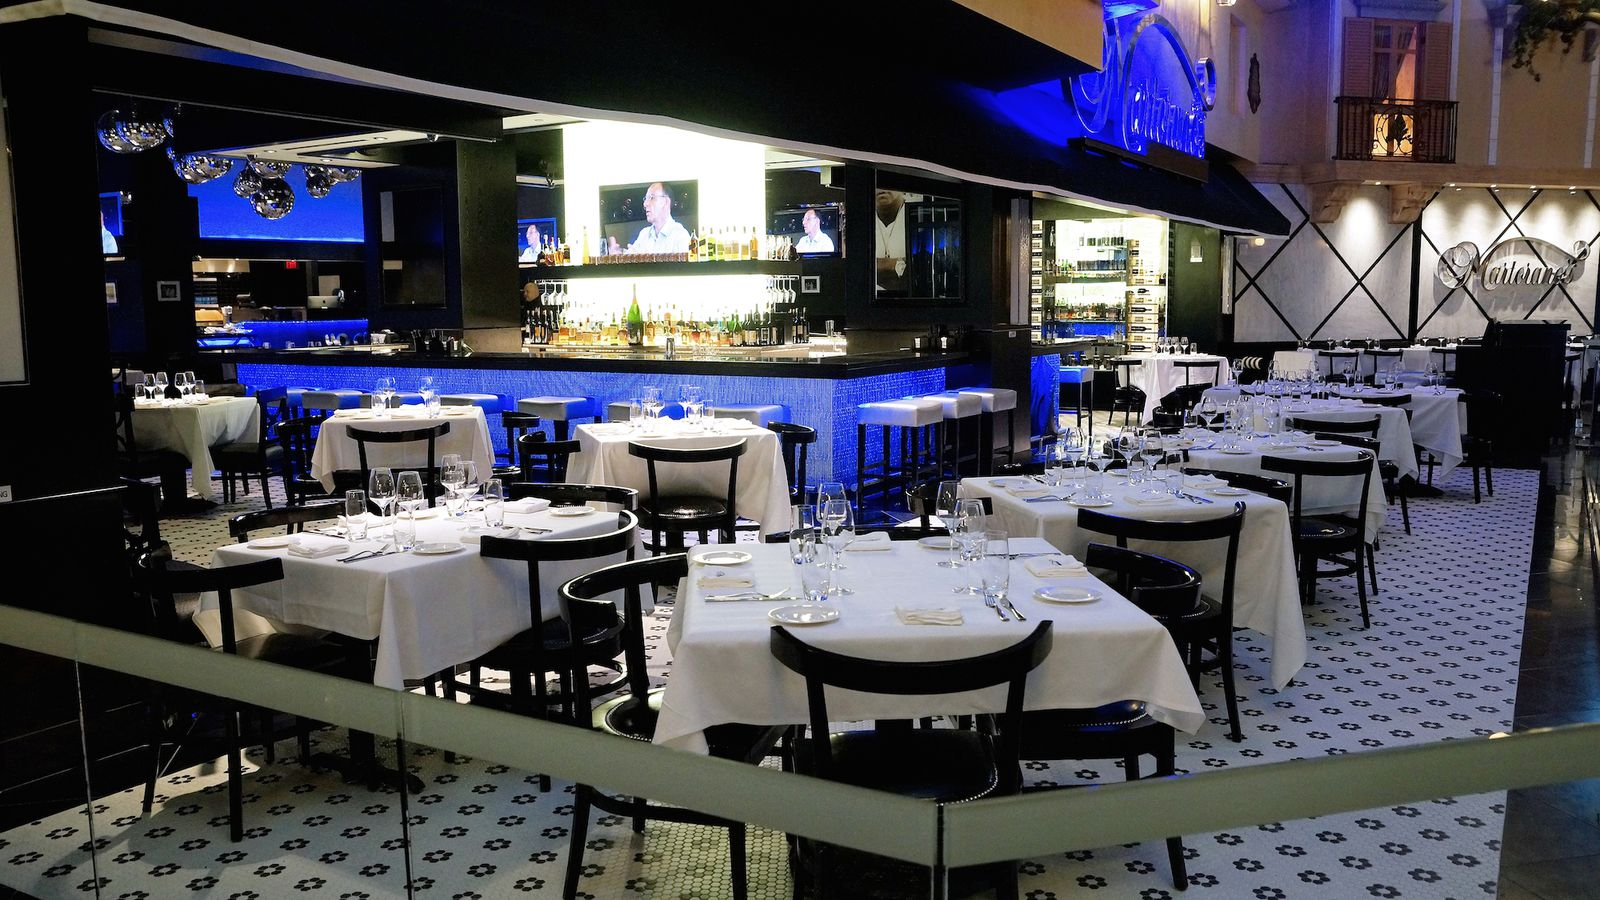 yo cuz take a look inside martorano 39 s at paris las vegas eater vegas. Black Bedroom Furniture Sets. Home Design Ideas